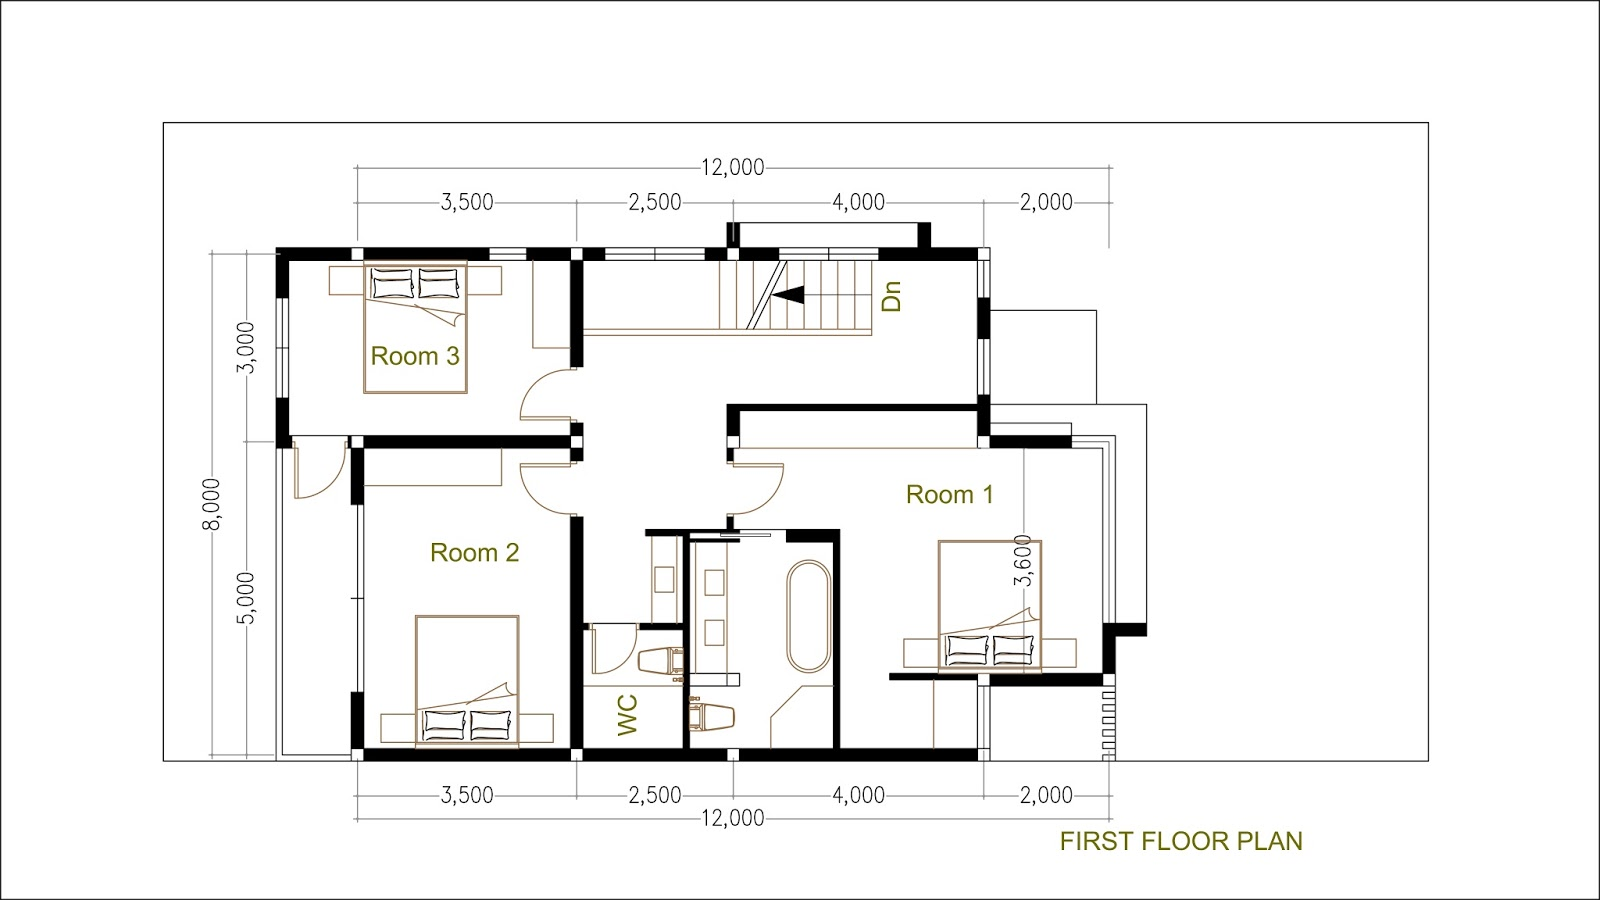 SketchUp Modern Home Plan Size 8x12m SaM ArchitecT